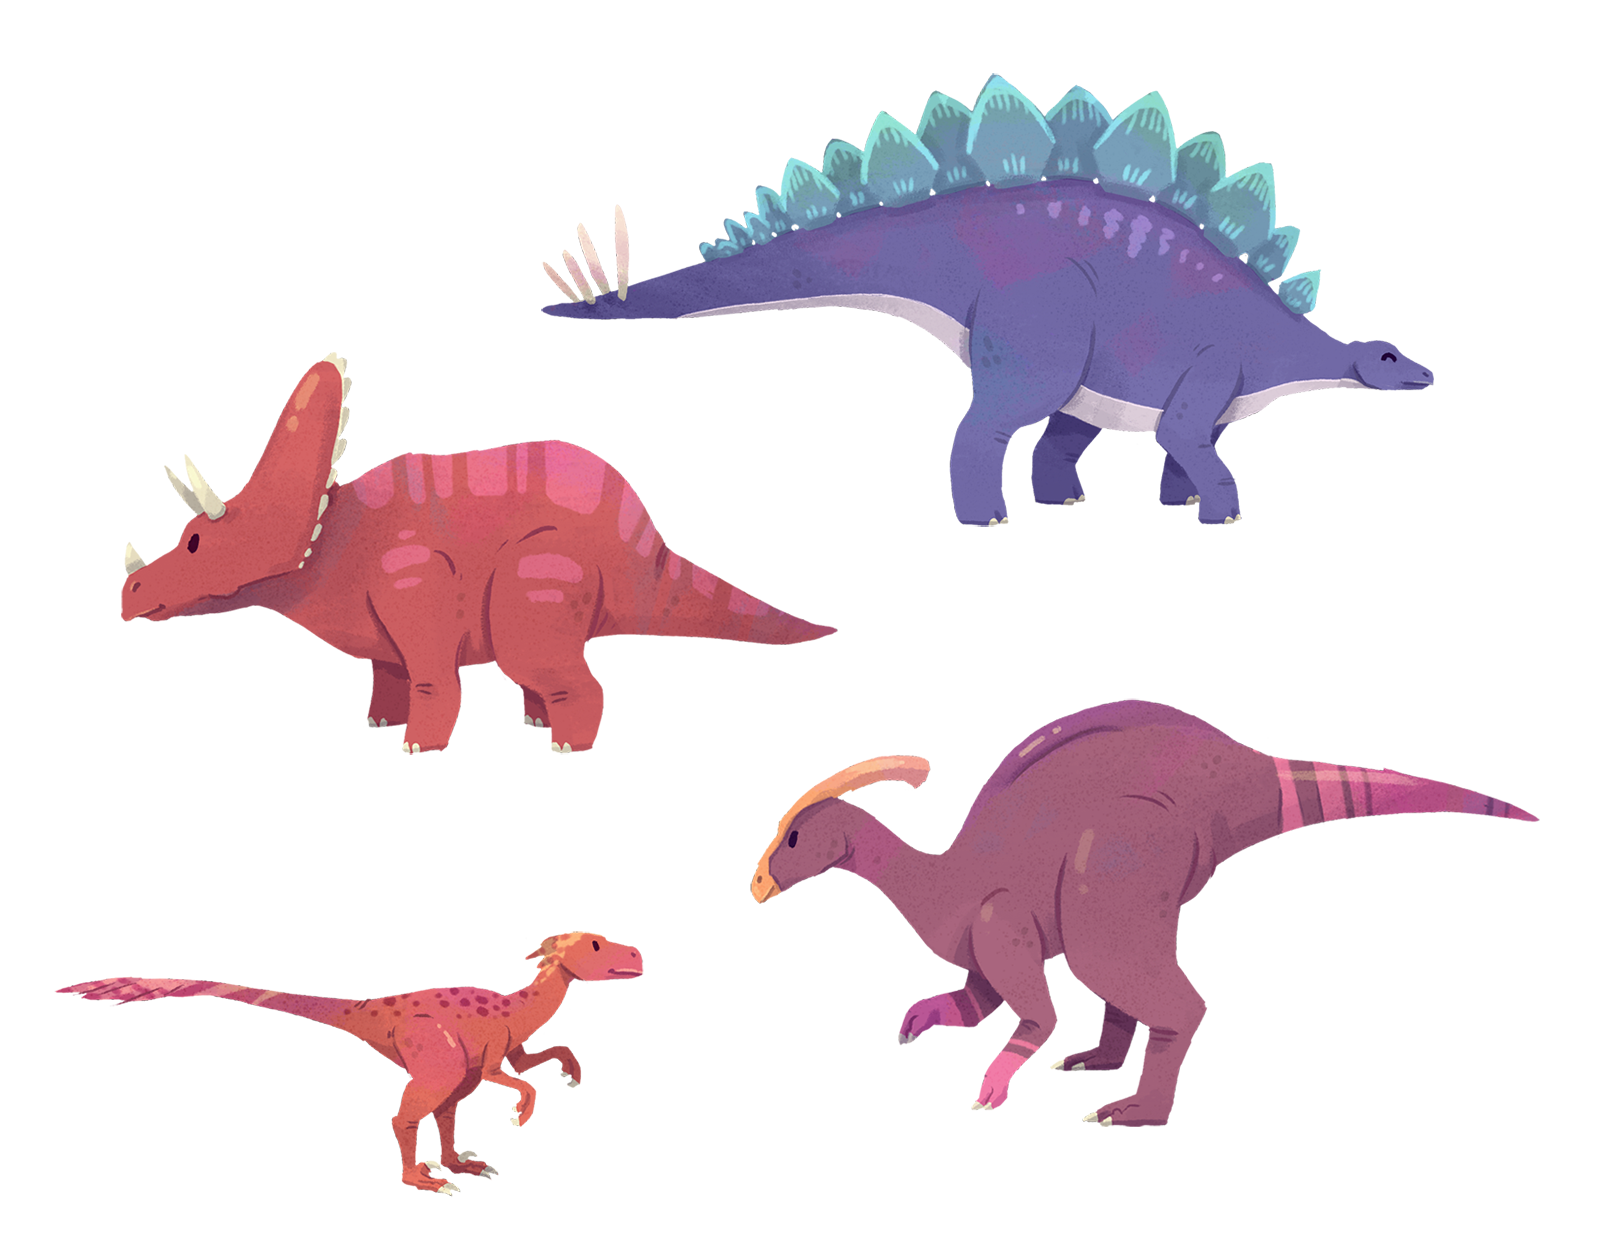 Dinosaurs_03.png